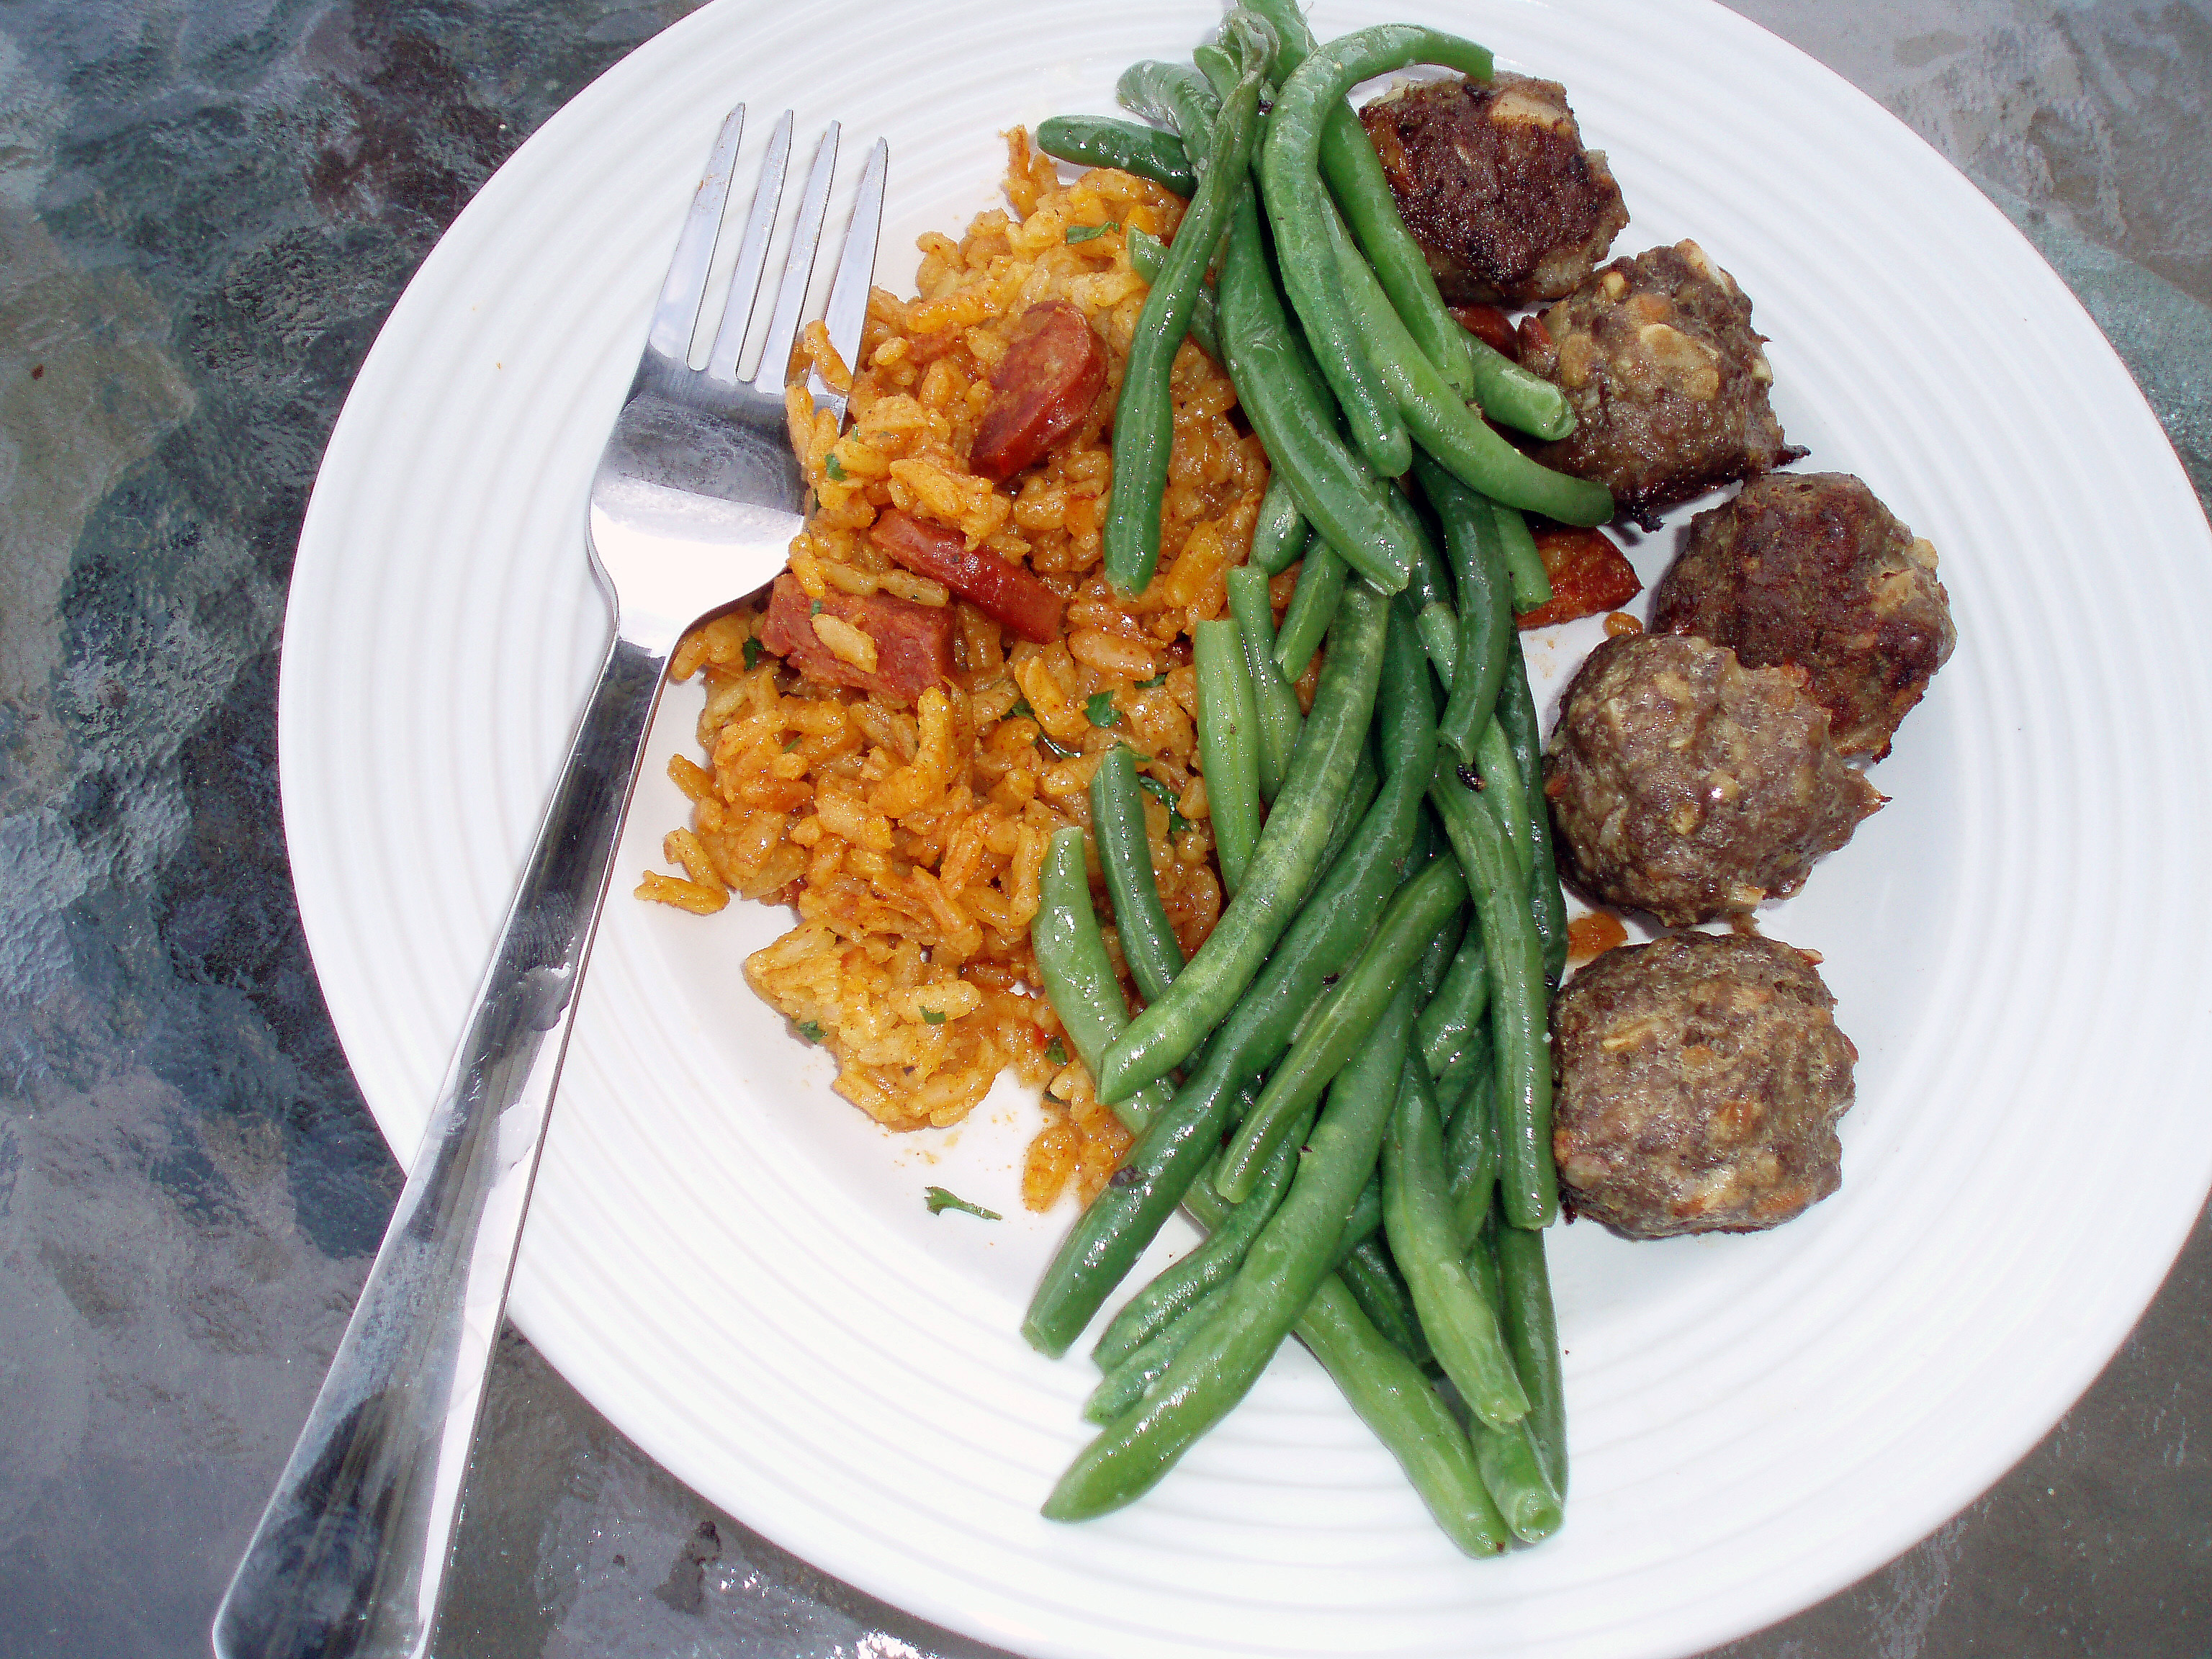 matt - spanish meatballs - full plate